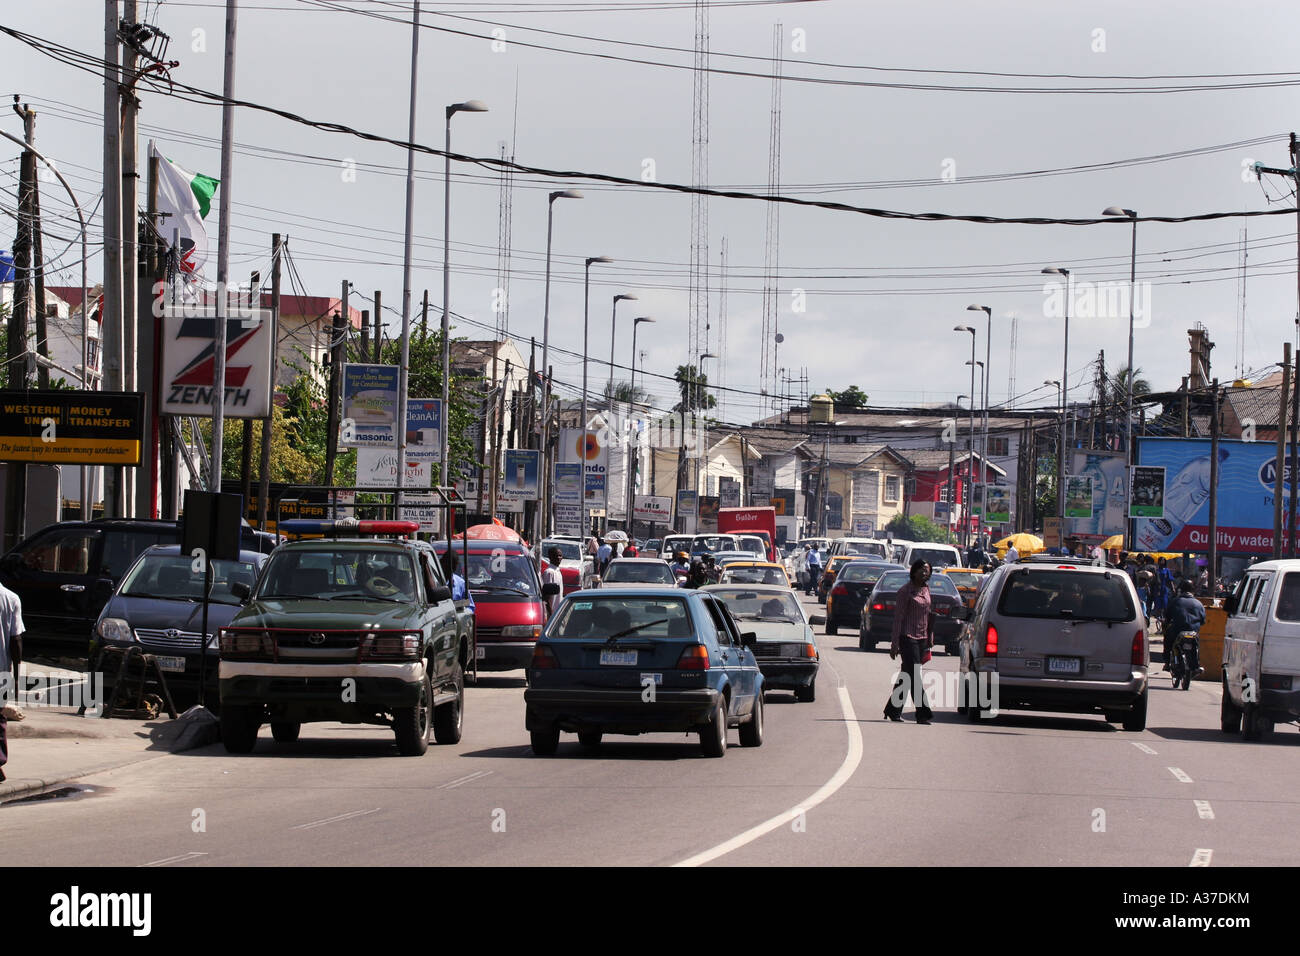 Busy street scene in Lagos city, Nigeria, West Africa. - Stock Image